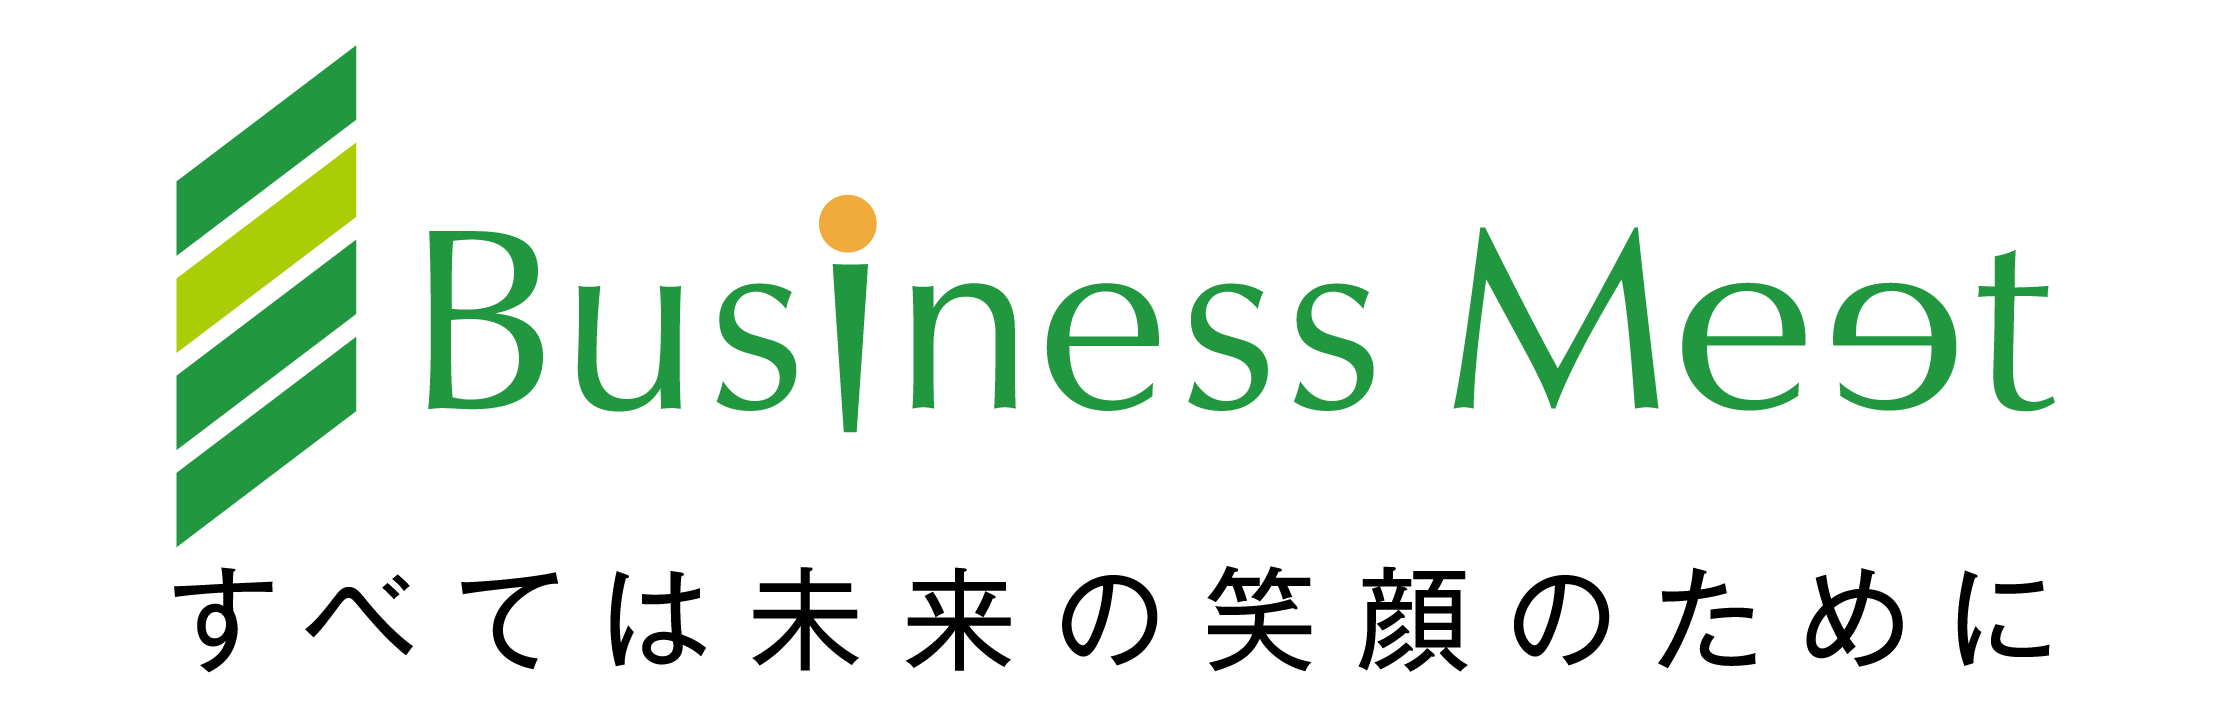 businessmeet_logo_4c-04-2